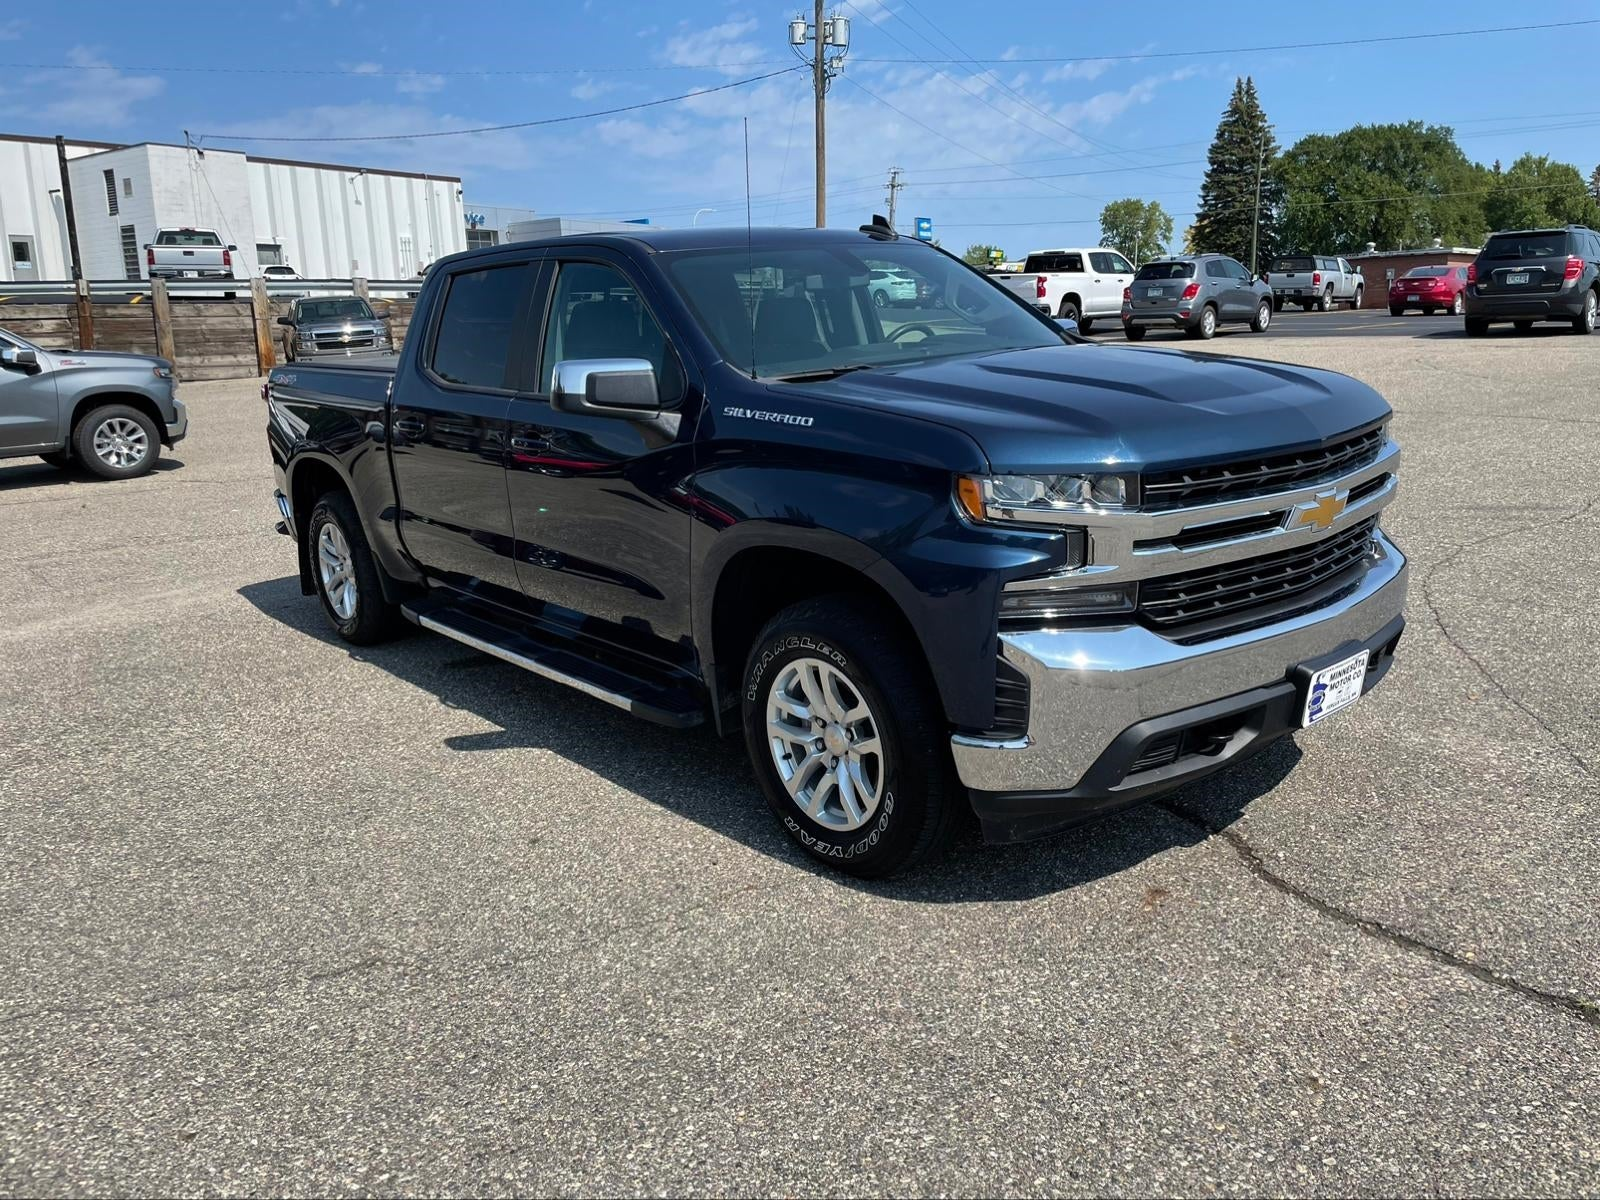 Used 2020 Chevrolet Silverado 1500 LT with VIN 3GCUYDED9LG308541 for sale in Fergus Falls, Minnesota